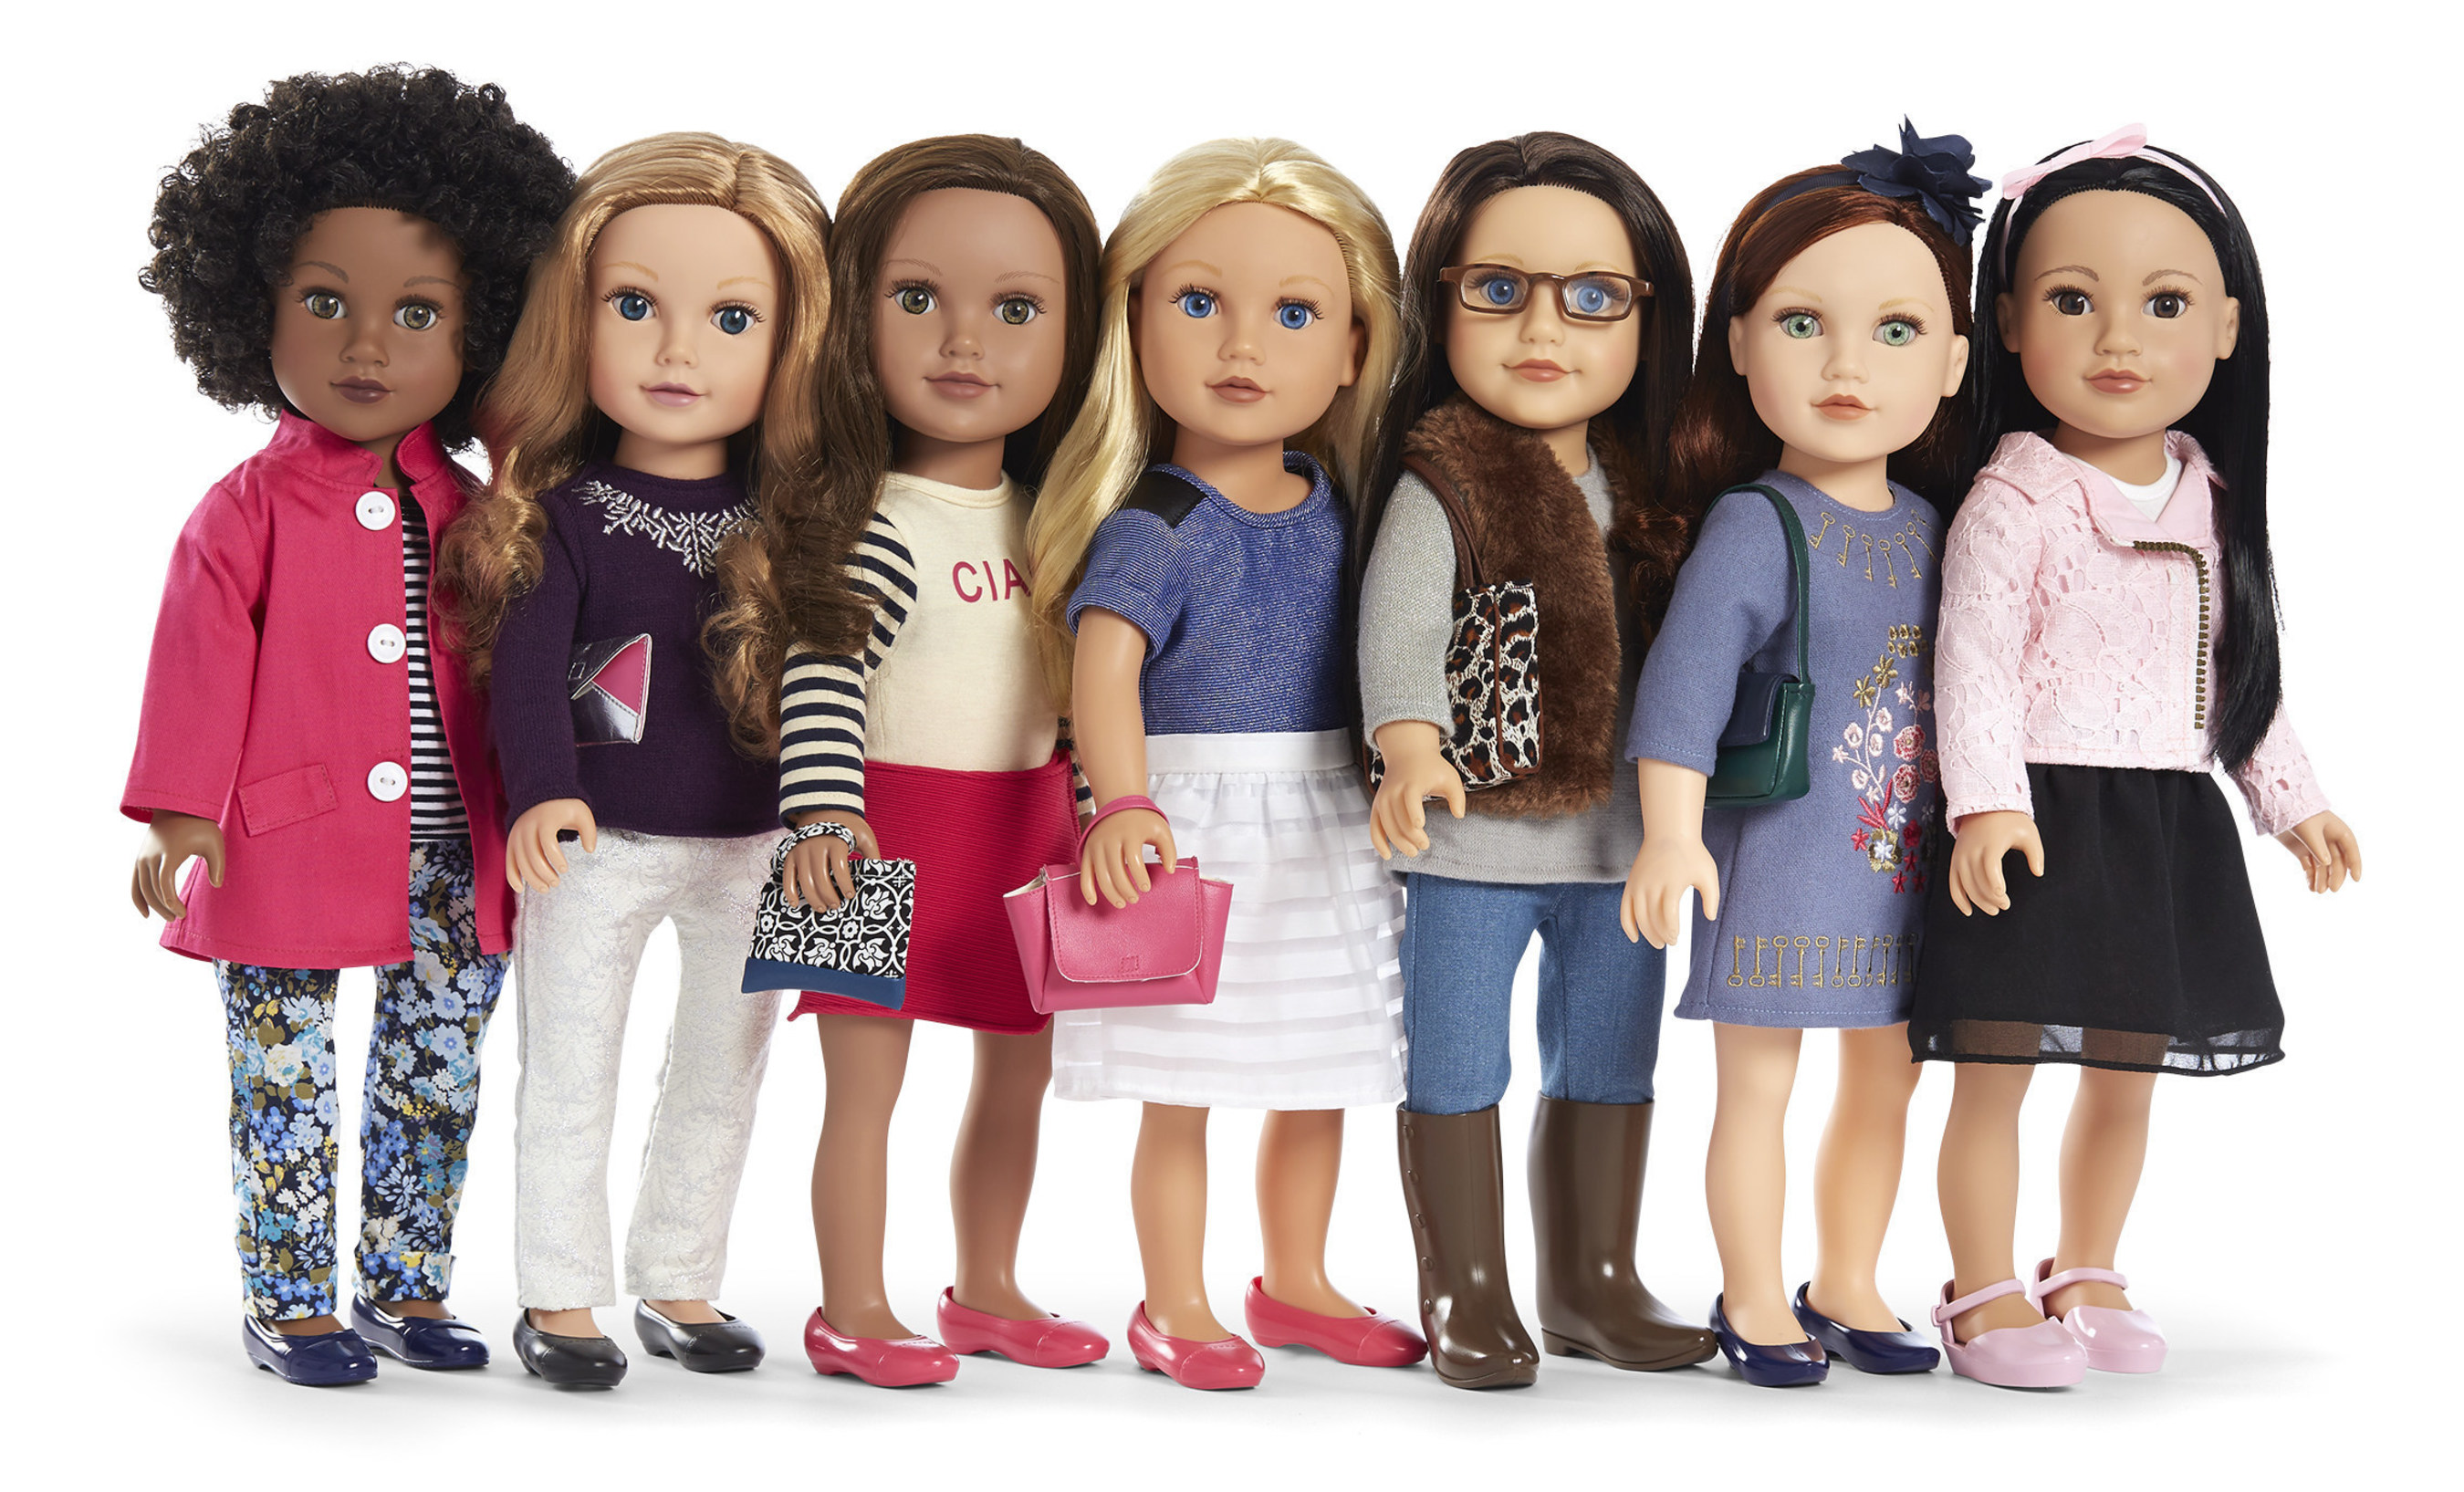 Toys R Us Celebrates Fifth Anniversary Of Its Exclusive Journey Girls Brand With Updated Collection